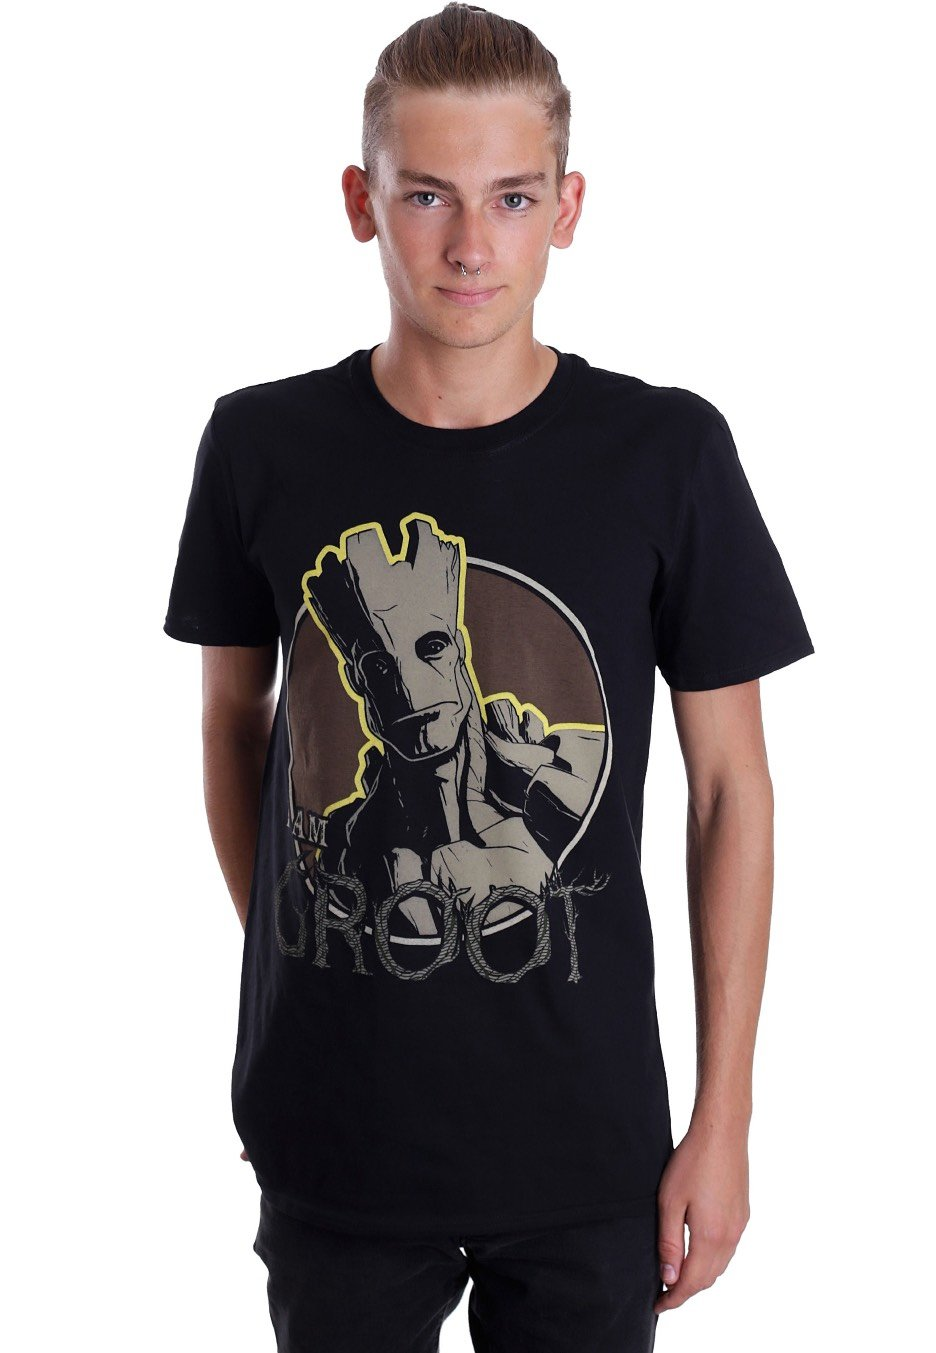 Guardians Of The Galaxy - Groot - - T-Shirts